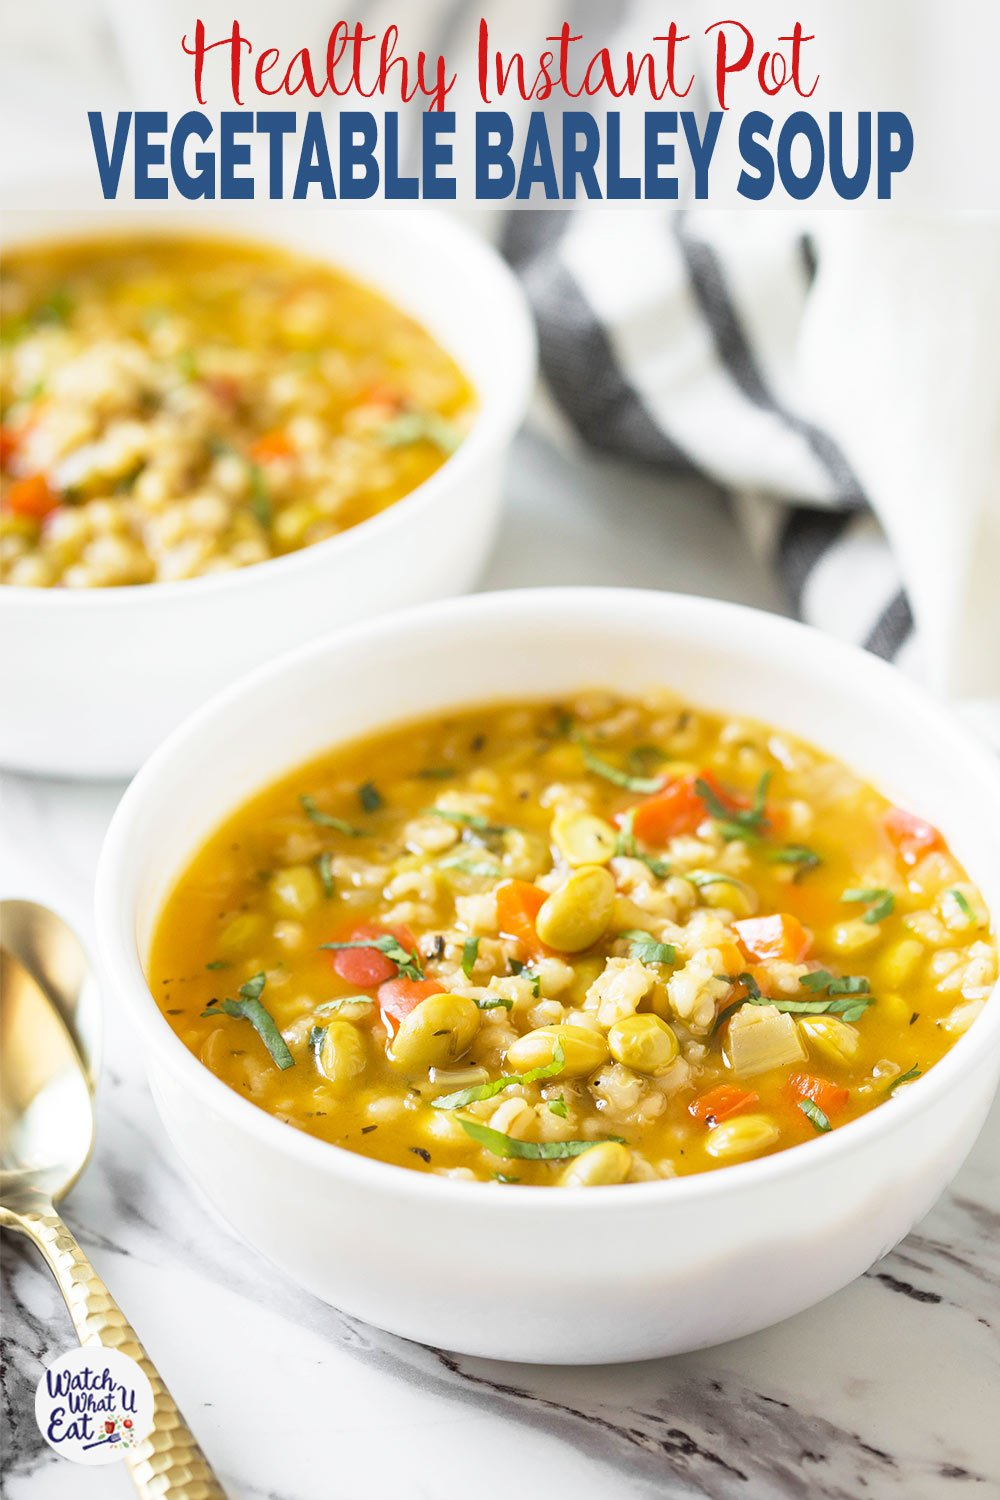 This Instant Pot Vegetable Barley Soup is a quick and easy recipe to enjoy a wholesome and nutritious soup. Full of flavors and takes about 30-40 min to prepare. And a perfect vegetable soup for weeknight dinners. | #watchwhatueat#barley #barleysoup #vegan #instantpotsoup